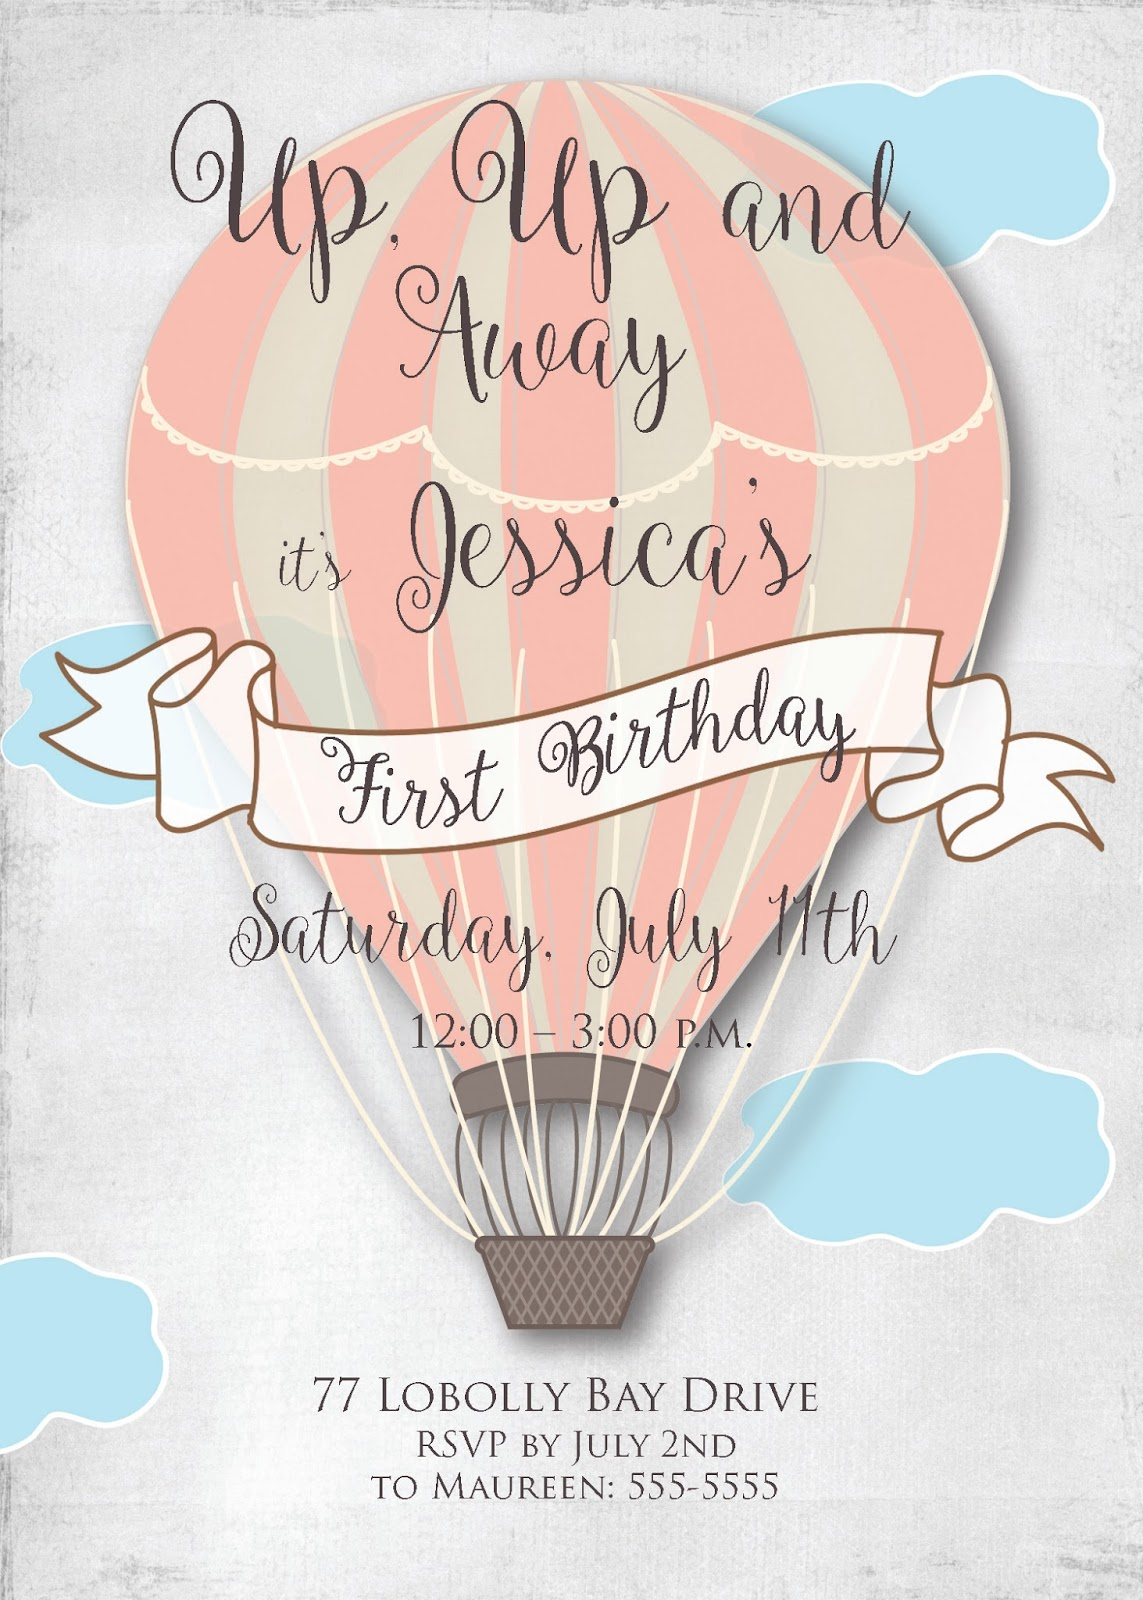 Sugar and spice invitations hot air balloon birthday party hot air balloon birthday party invitation first birthday invite sugar and spice invitations filmwisefo